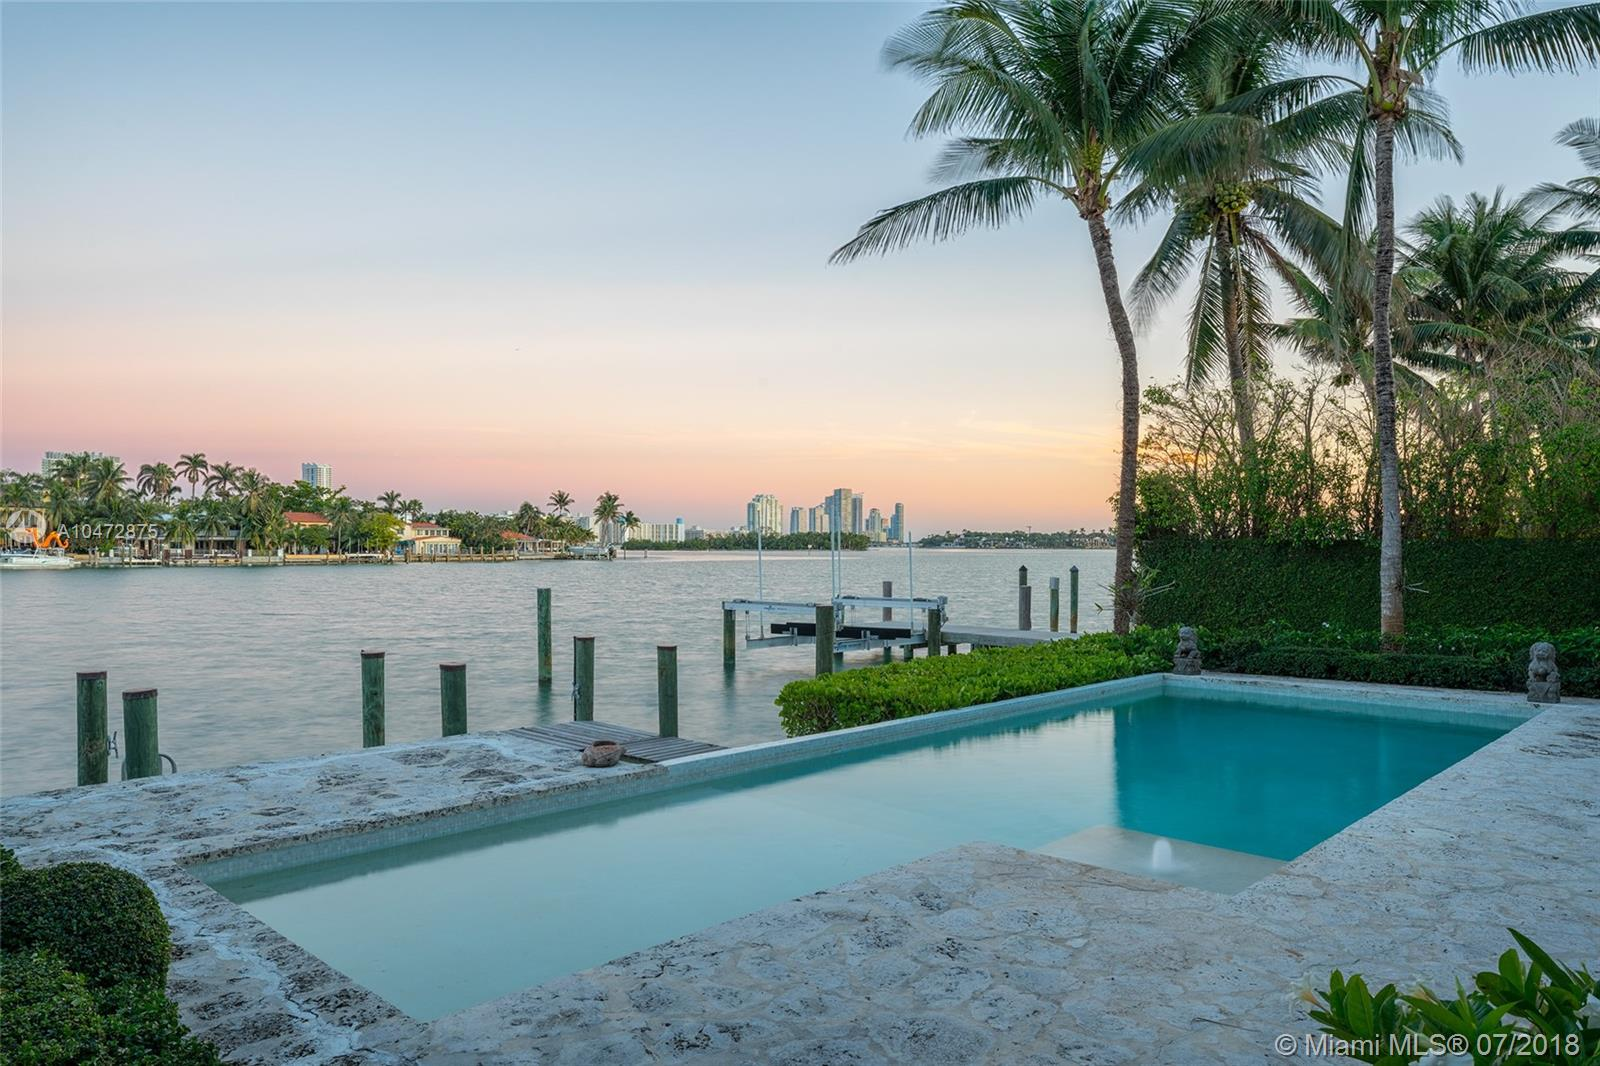 This Stunning Two-Story Waterfront Home On Coveted Venetian Islands Is The Perfect 10! Completely Renovated It Features 5, 641 Sqft Of Impeccably Designed Interior Spaces Including 5 Bedrooms, 6.5 Bathrooms, 2-Car Garage Under Air-Conditioning Plus An Attached 1 Bedroom/1 Bathroom Guest/Nanny/In-Law Quarters W/ Independent Entry. The Gourmet Kitchen Sports Top Of The Line Appliances While The Second-Floor Master Suite Features Generous Walk-In Closet, His And Hers Bathroom, And Secluded Private Balcony Overlooking The Tranquil Waters. The Private Dock, 60 Feet Of Sparkling Waterfrontage, Covered Outdoor Terrace, Heated Pool, Tons Of Natural Light, And Proximity To Miami International Airport, Downtown, And Lincoln Road All Make This An Exquisite Oasis!